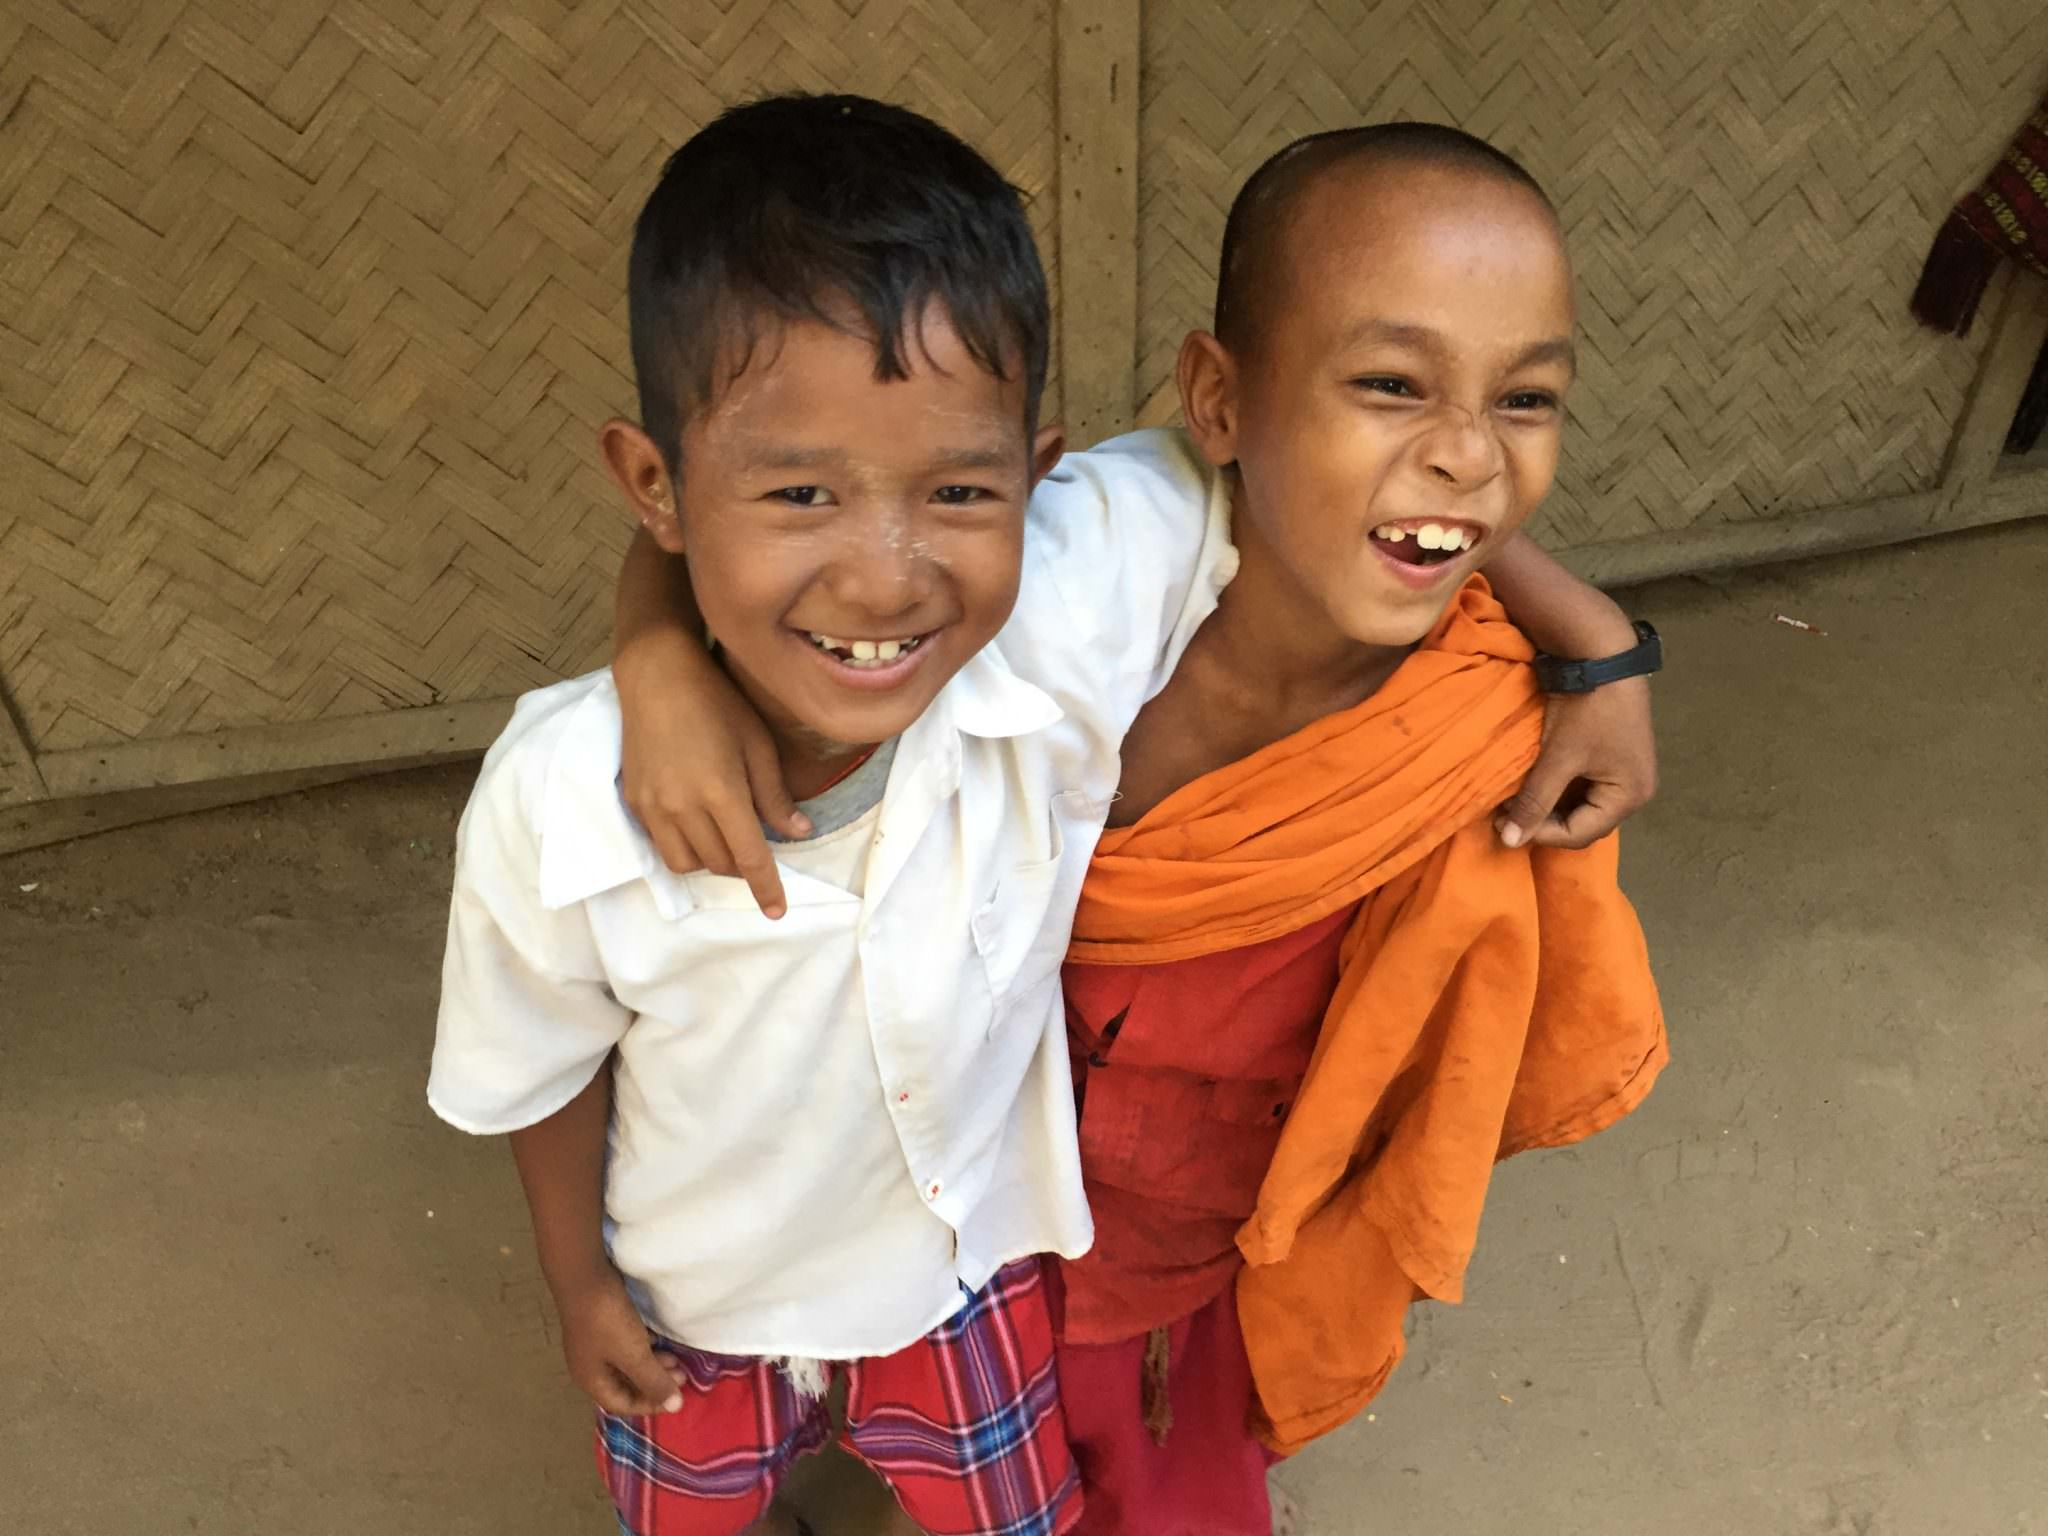 Two young boys, one a novice monk, decided to adopt me. They didn't leave my side for hours. Every minute or so I'd snap a new photo of them, per request, and we'd carry on. © 2015 Gail Jessen